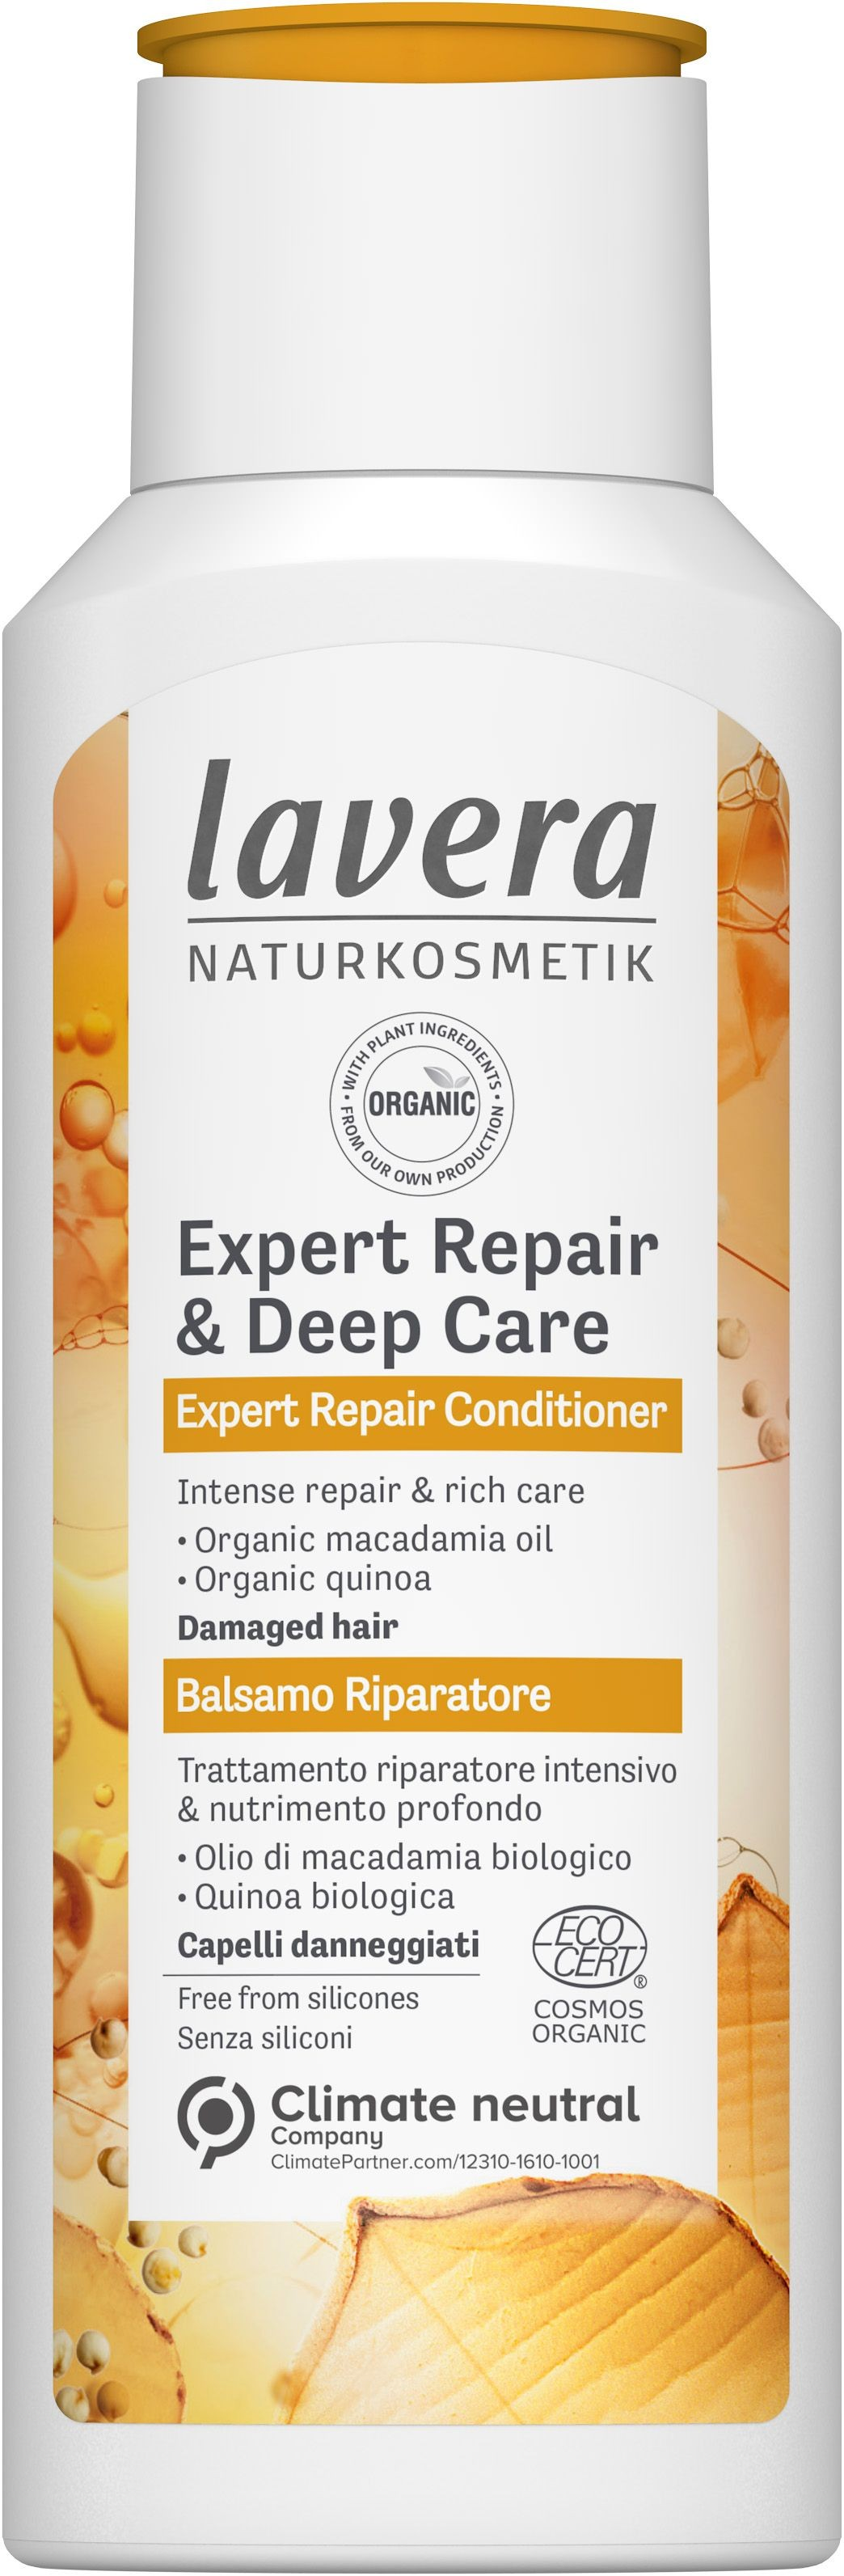 Lavera Expert Repair -Conditioner Organic